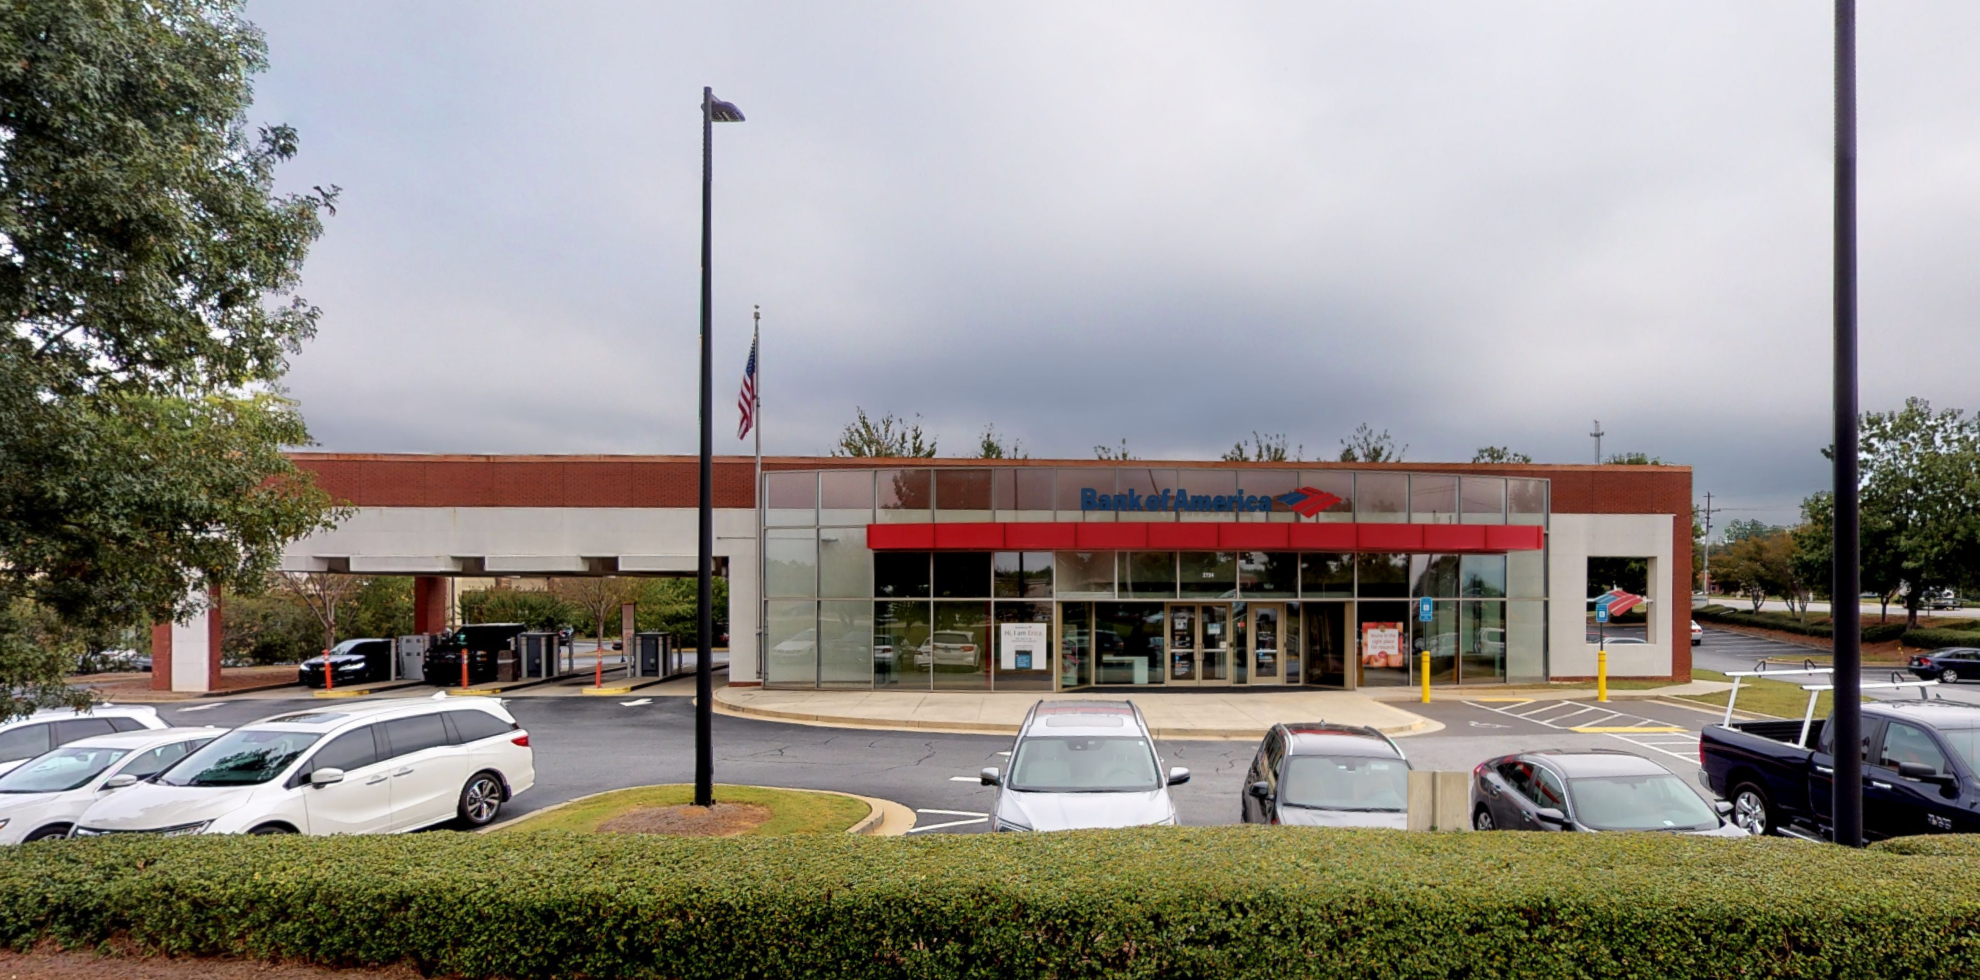 Bank of America financial center with drive-thru ATM   2724 Meadow Church Rd, Duluth, GA 30097